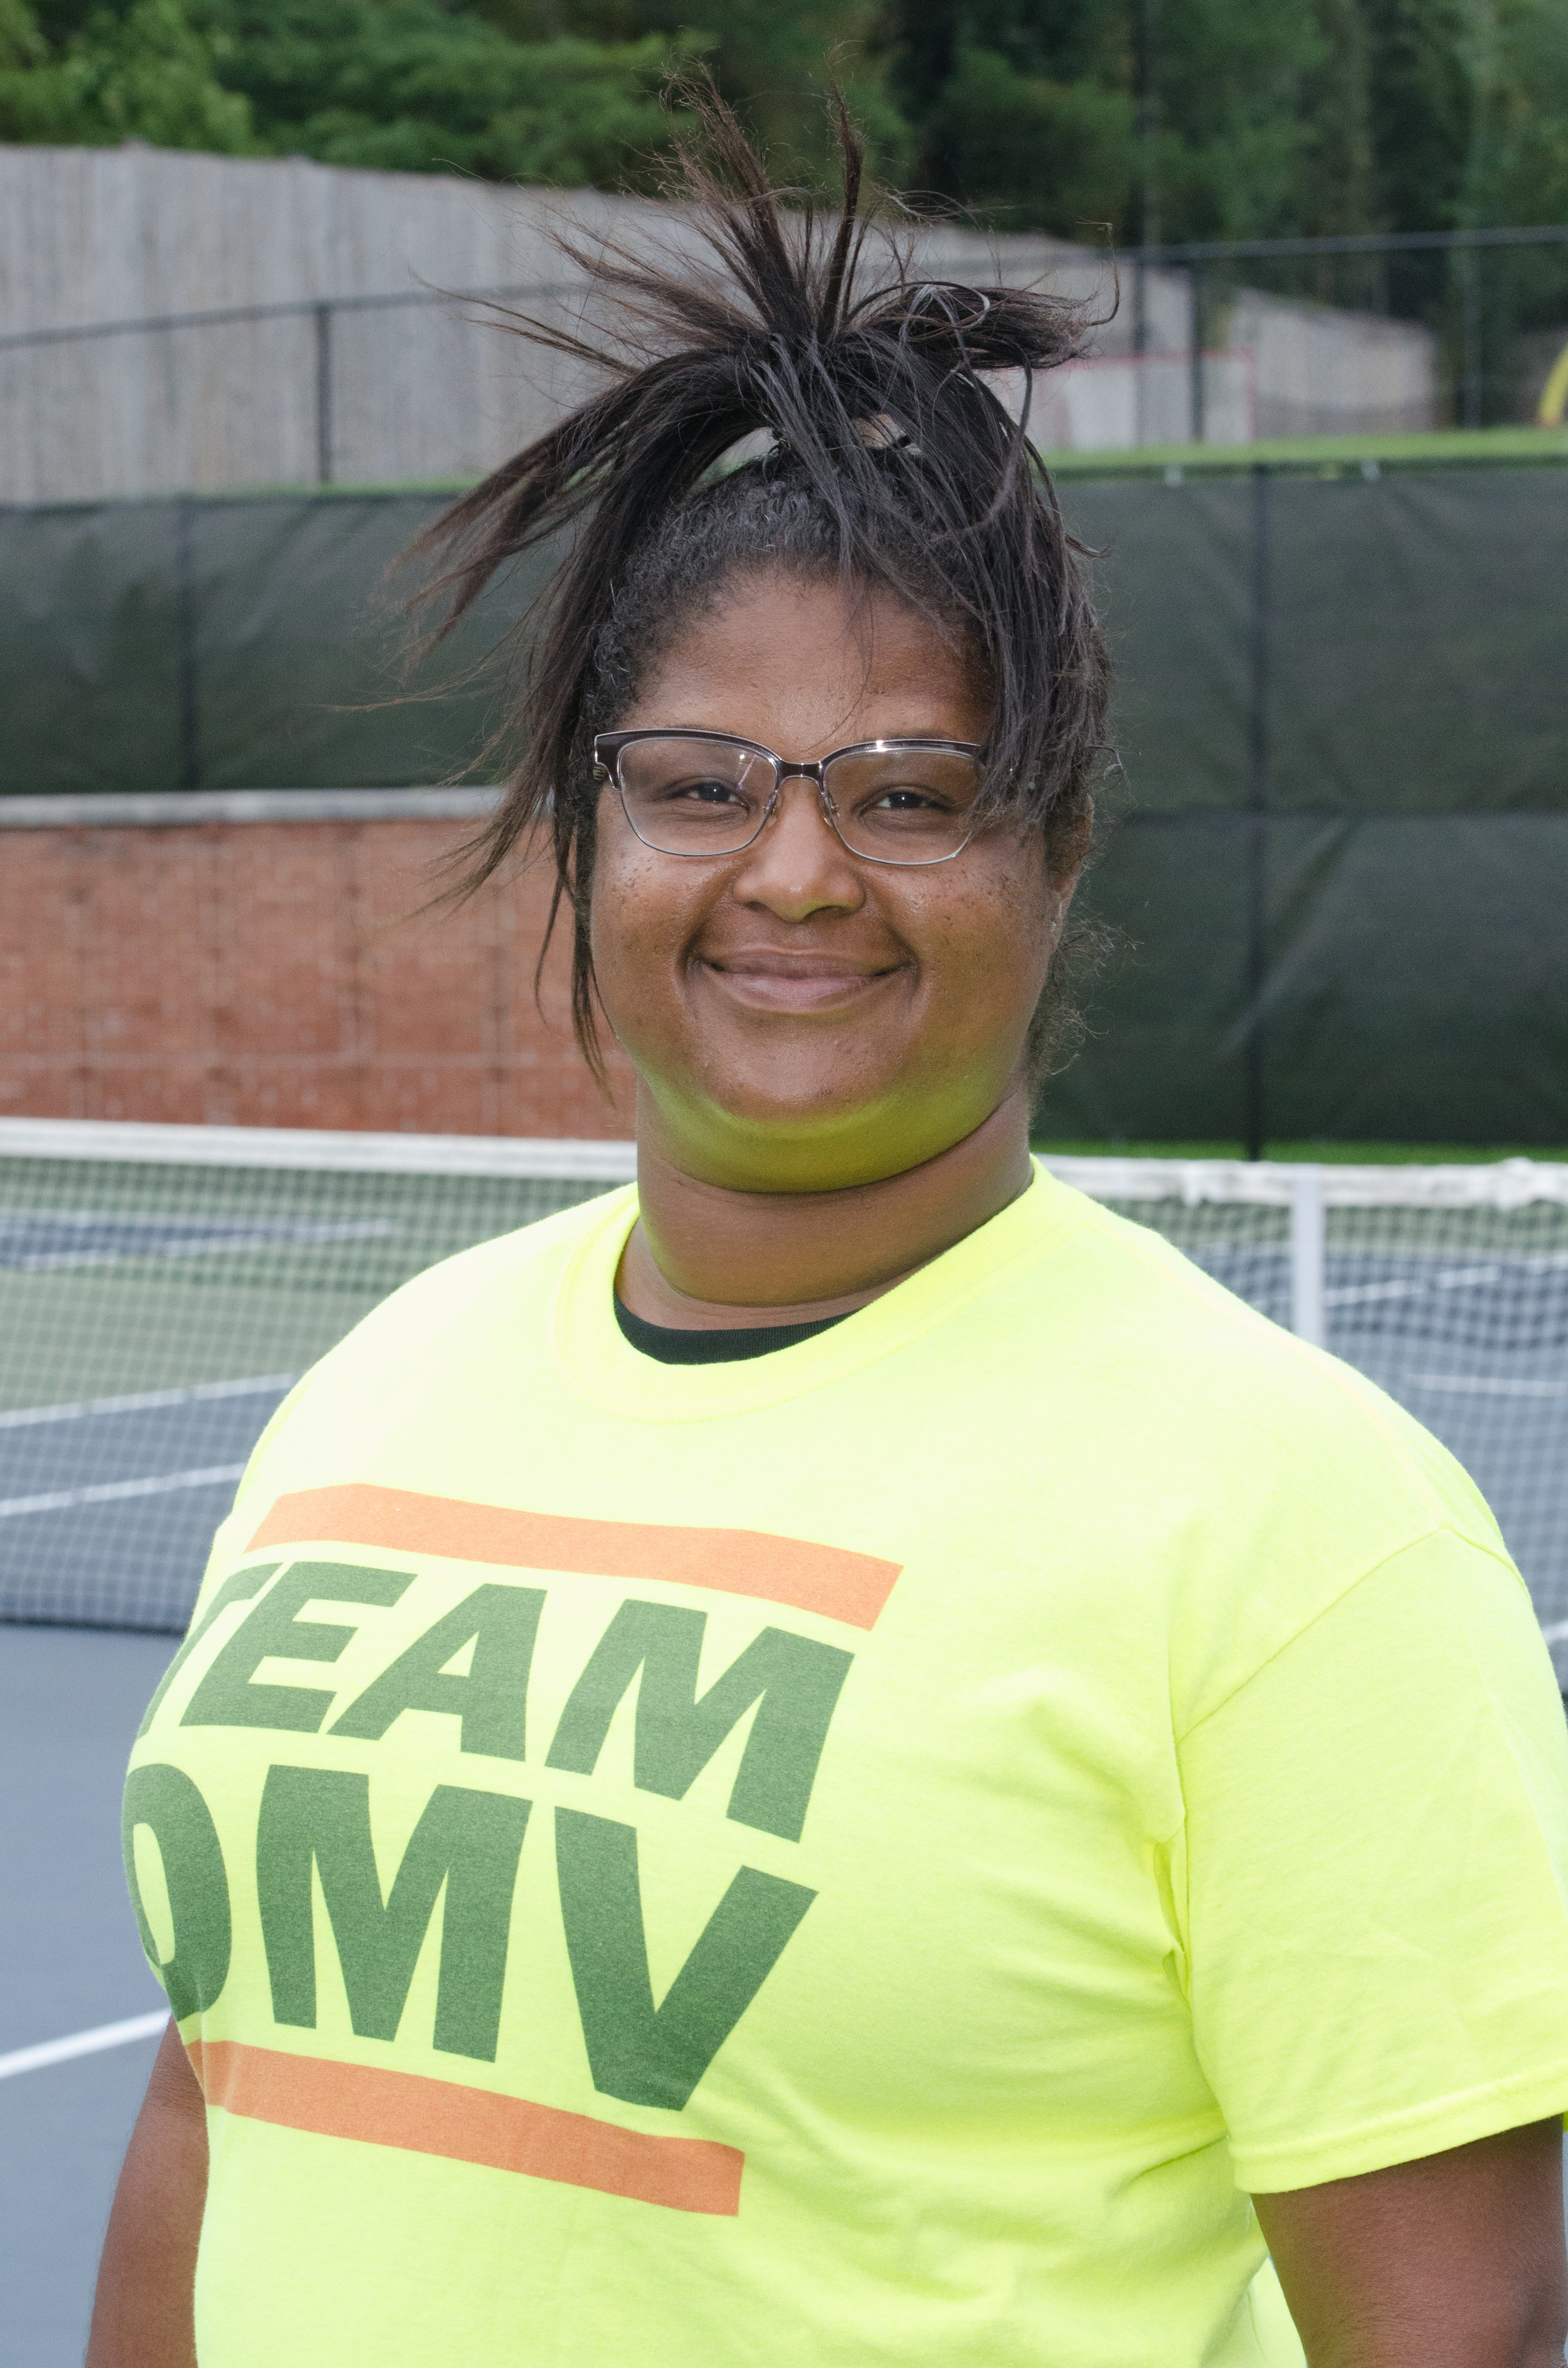 COACH SHELLEY - Shelley DeLon is a competitive tennis player that played tennis as a junior, on the college level and currently plays adult leagues. She was ranked as high as #3 in the MAS section as a junior. Upon graduating from the University of Virginia her interest and desire to play the game grew to include an interest in coaching. Shelley has been a USTA Certified Instructor and a PTR Junior Developmental and Adult Developmental Certified Professional for the past 5 years. She coaches tiny tots, beginners, intermediate, advanced, and high performance players. She is a Junior Team Tennis Coach for D.C. and a tennis instructor for Metropolitan Tennis and Education Group.